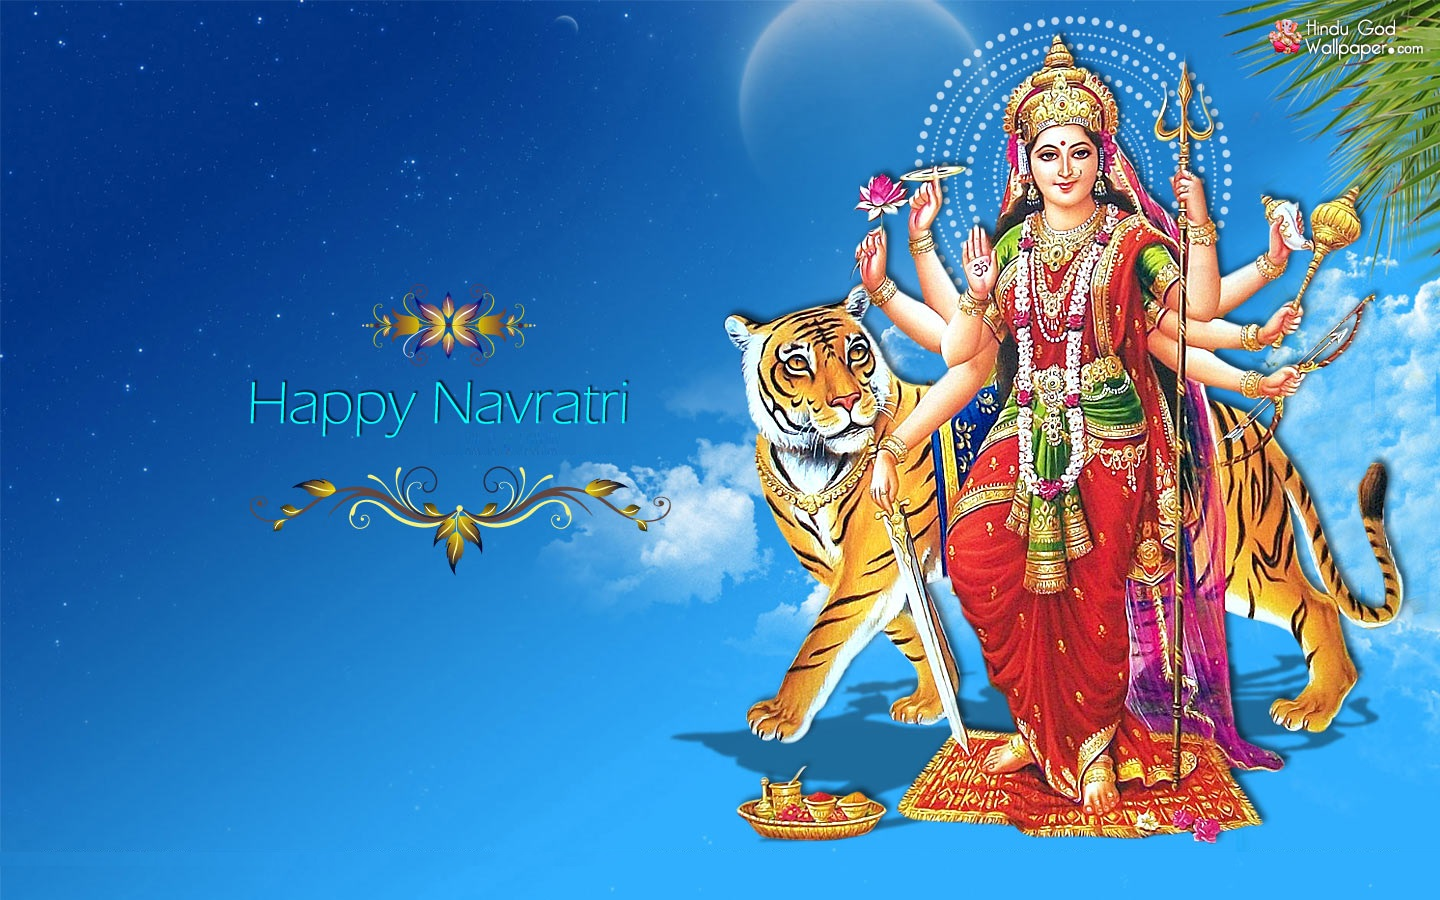 navratri maa durga hd images wallpapers and photos free download